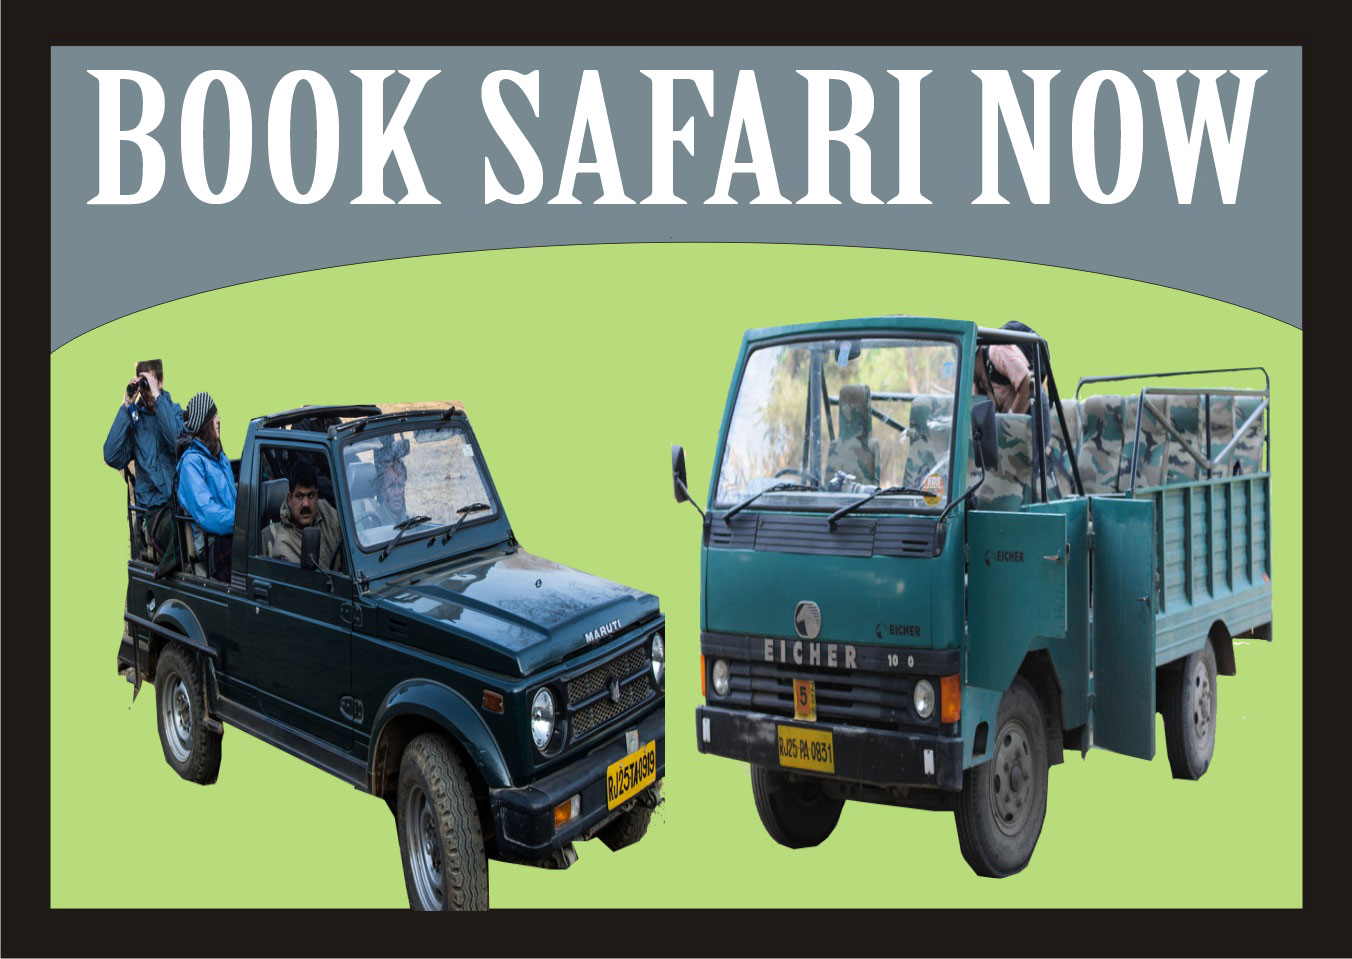 Book a safari